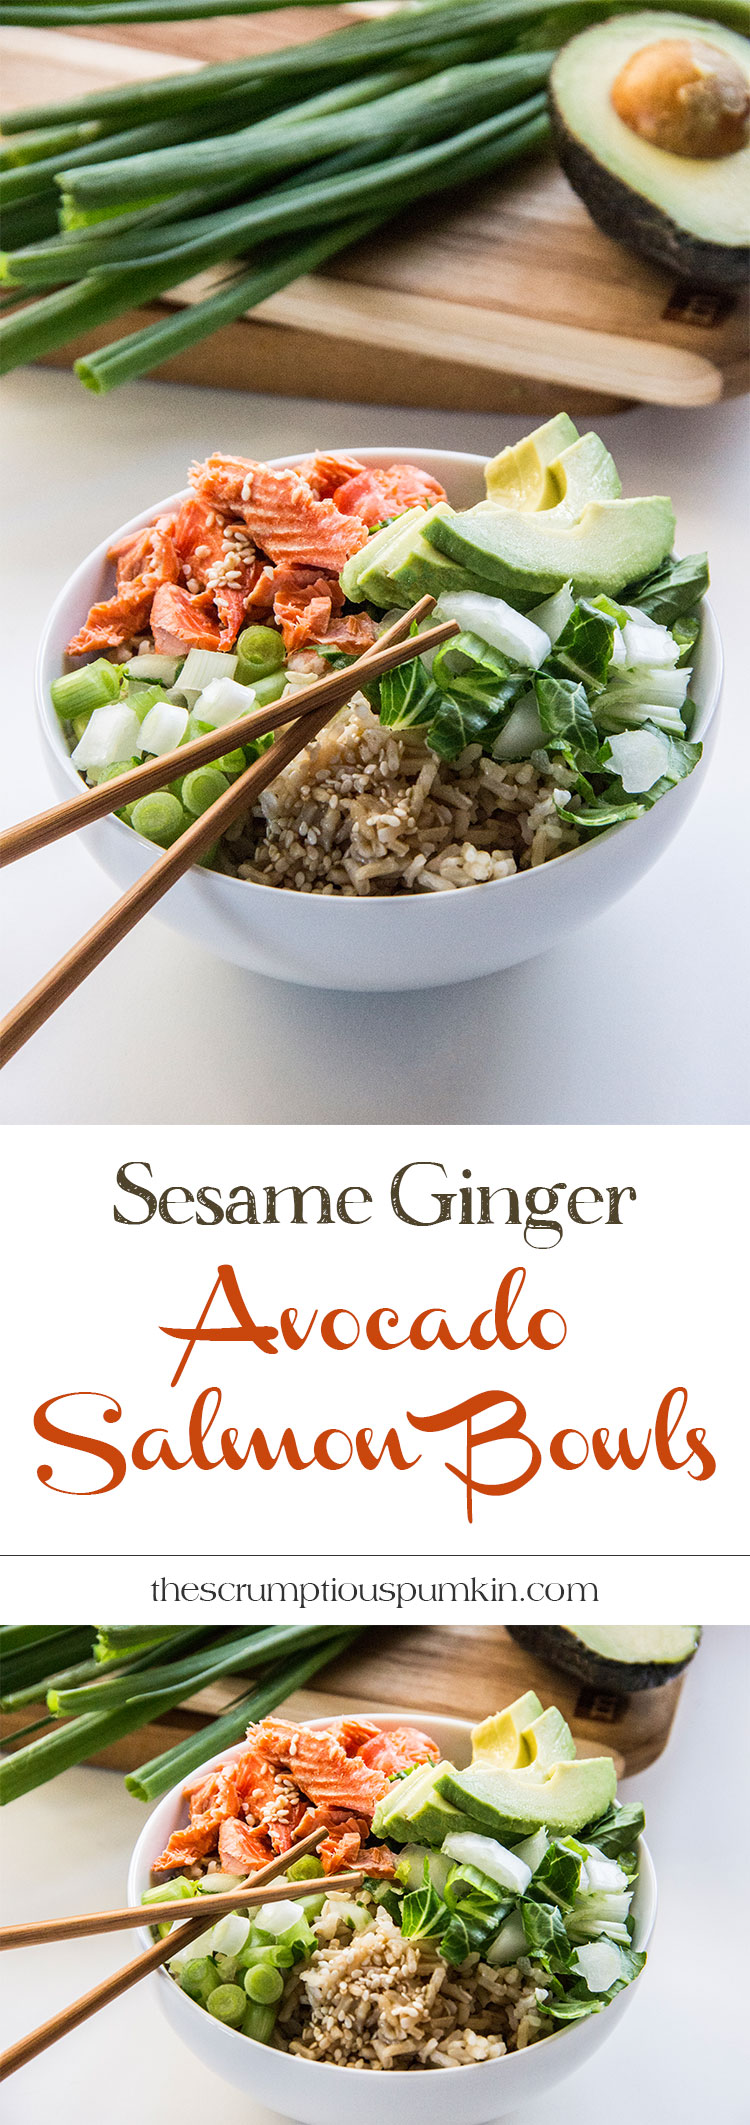 Sesame-Ginger-Avocado-Salmon-Bowl